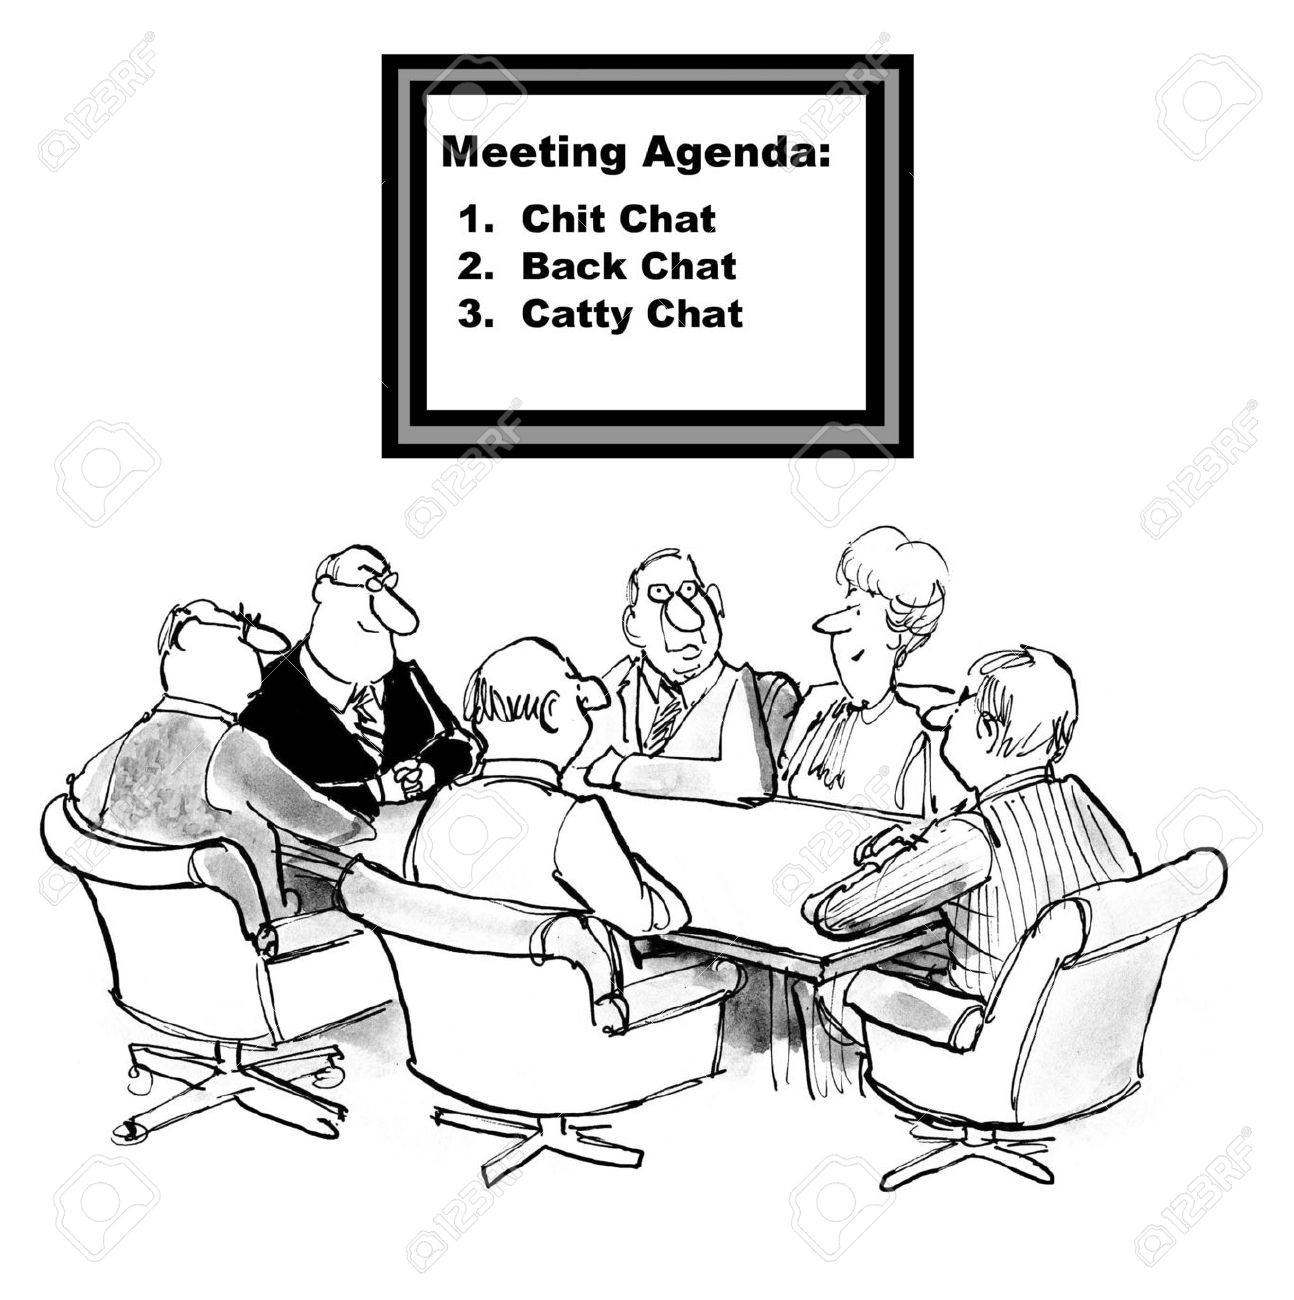 Cartoon Of Team Meeting, The Agenda Is Chit Chat, Back Chat ...